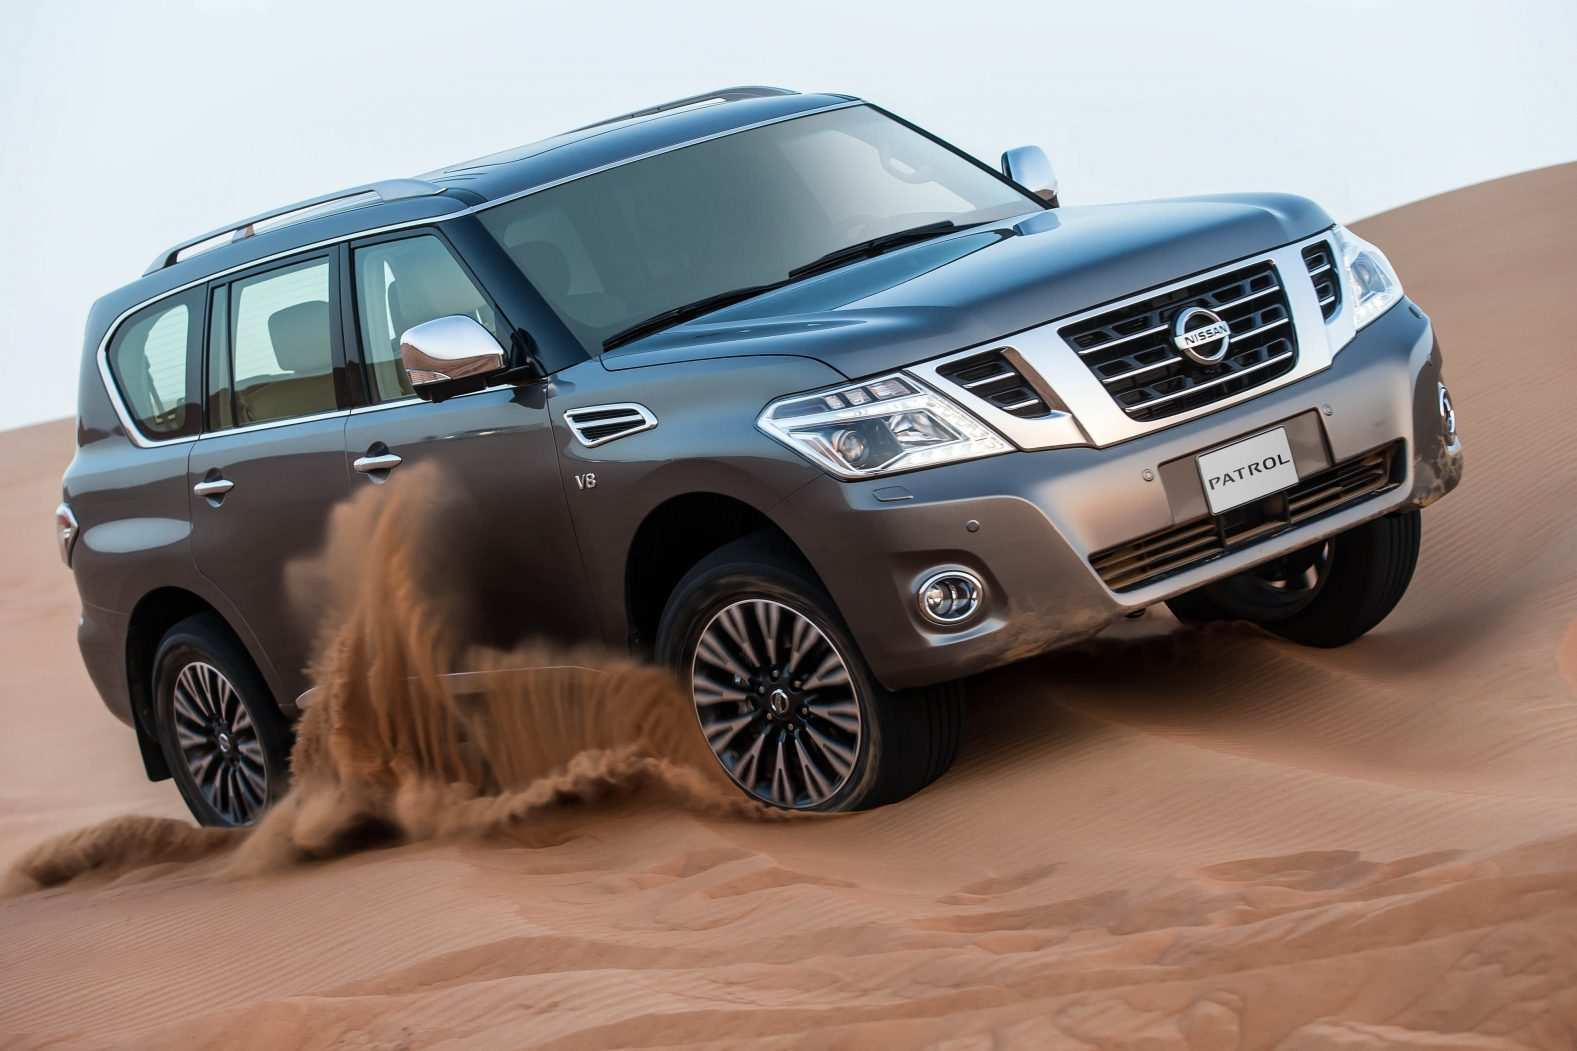 29 Best Nissan Patrol 2020 Release Date And Concept